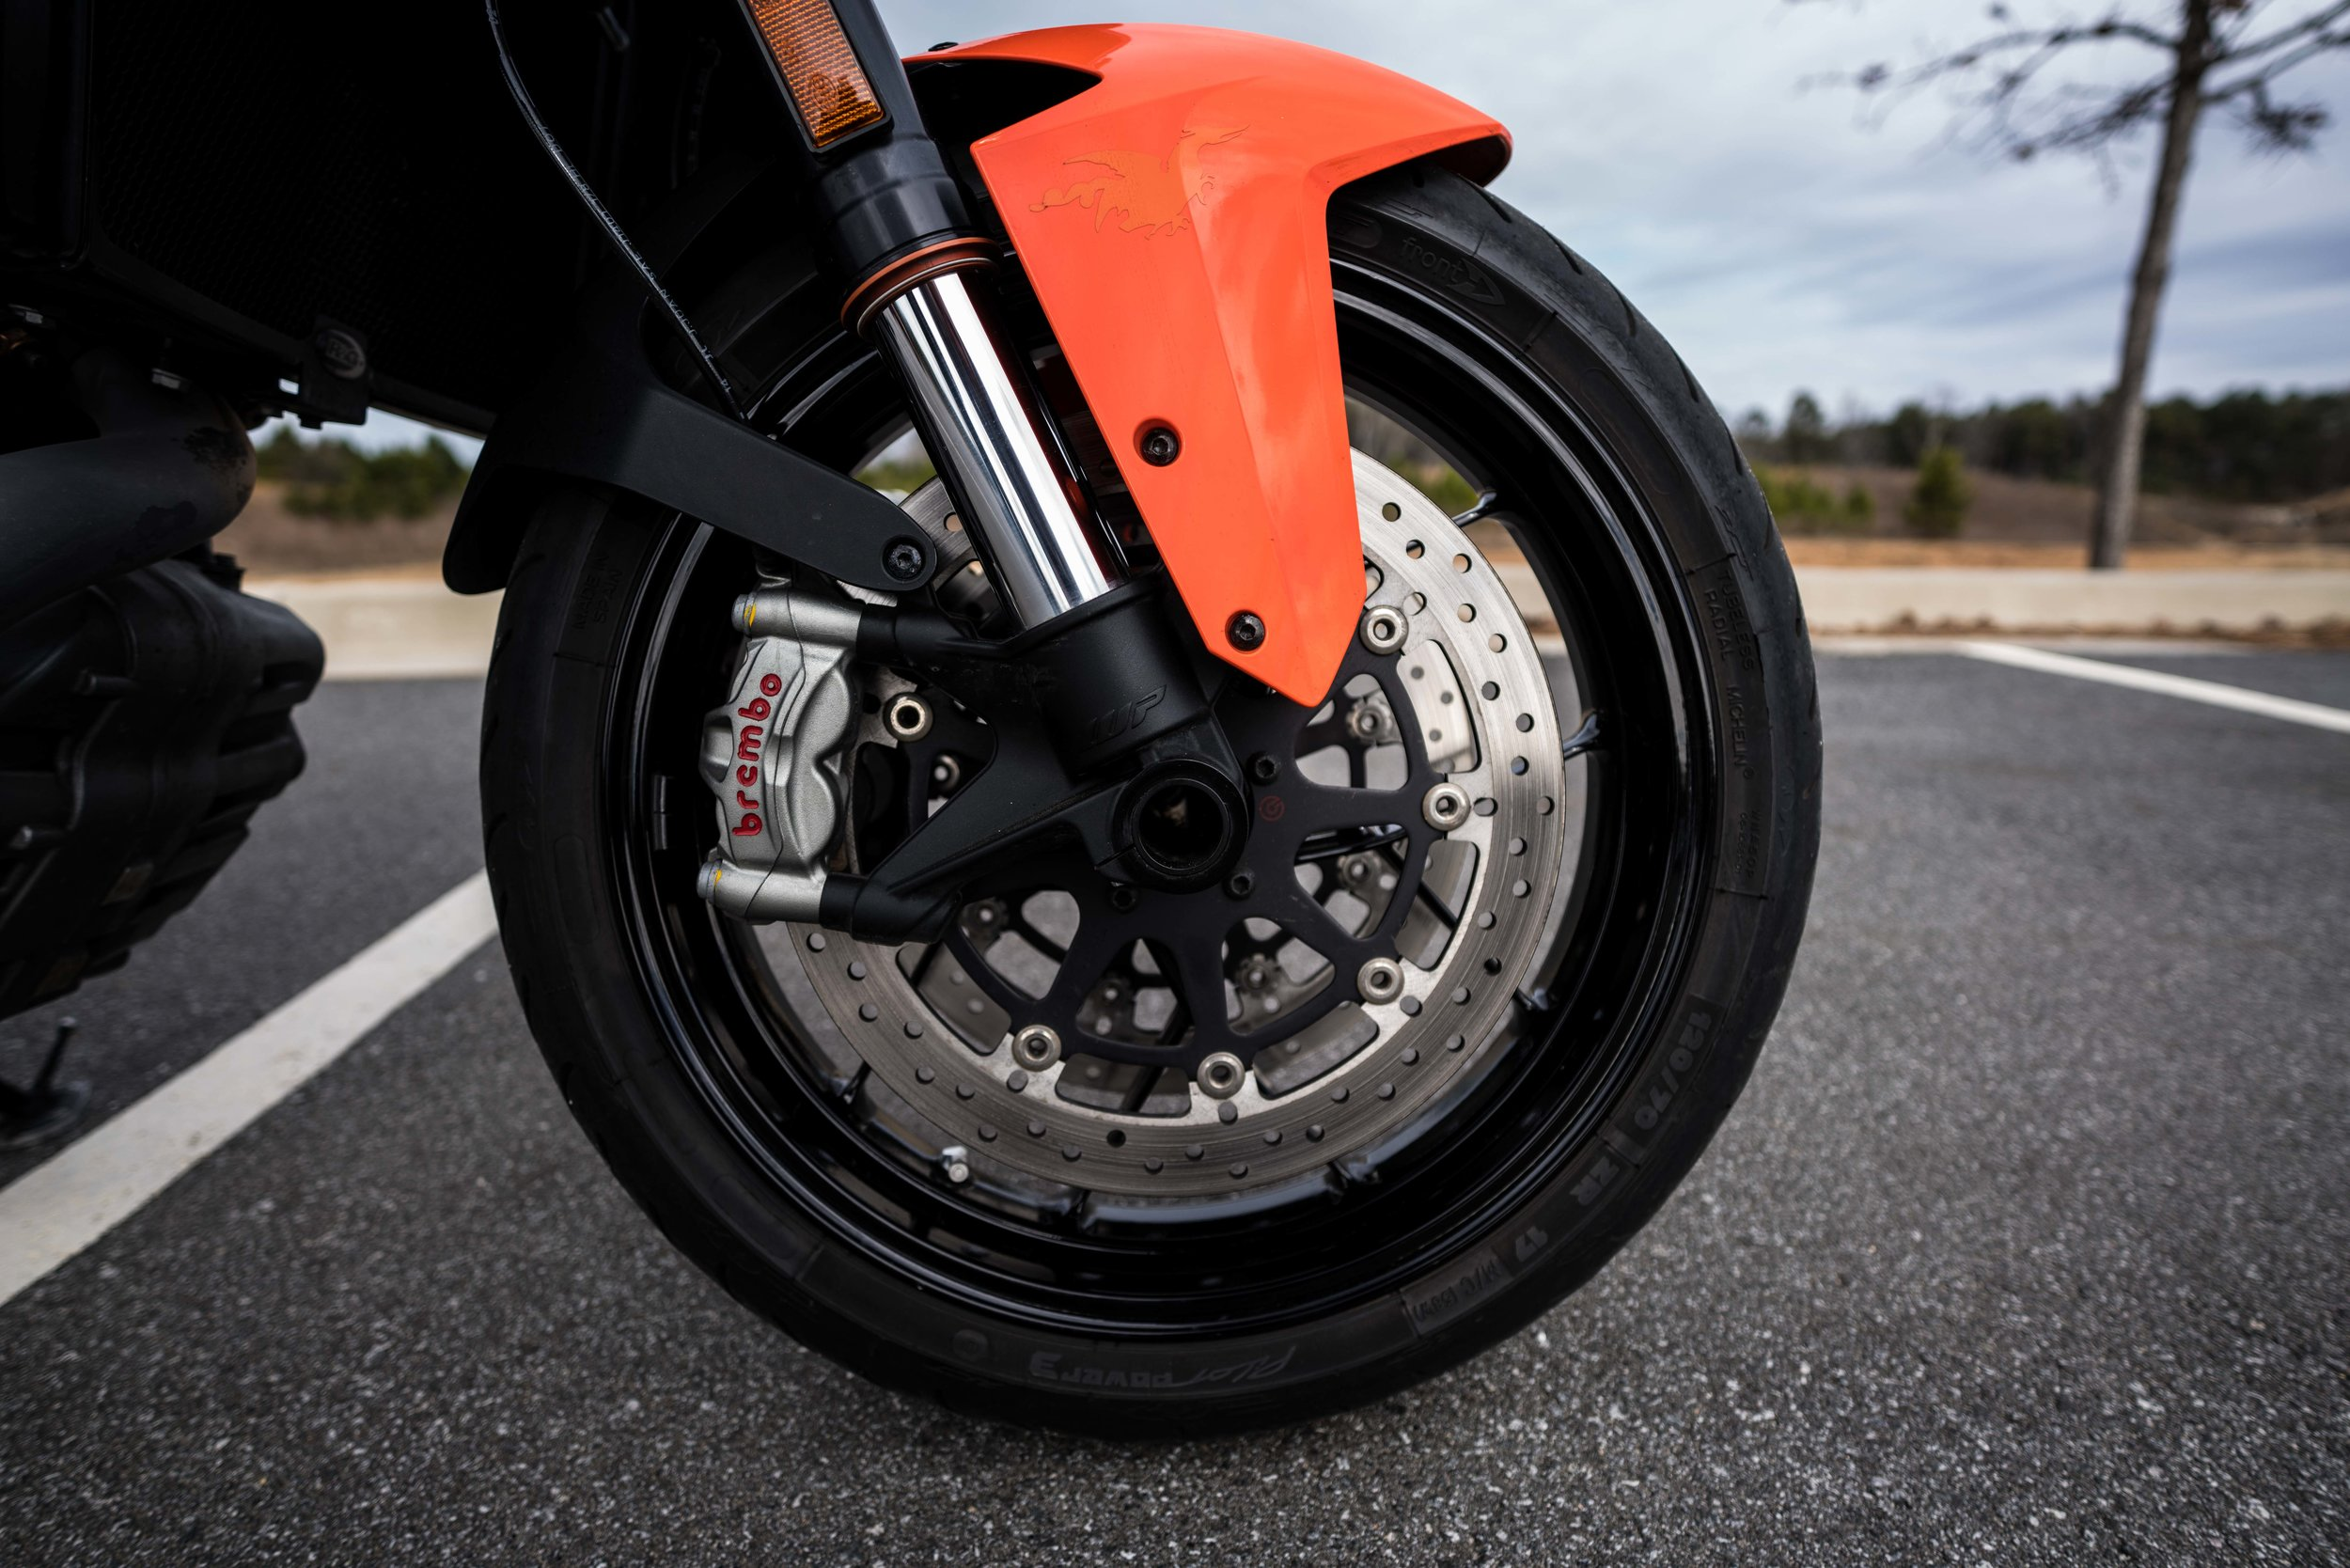 Superduke_FirstRide-5.jpg